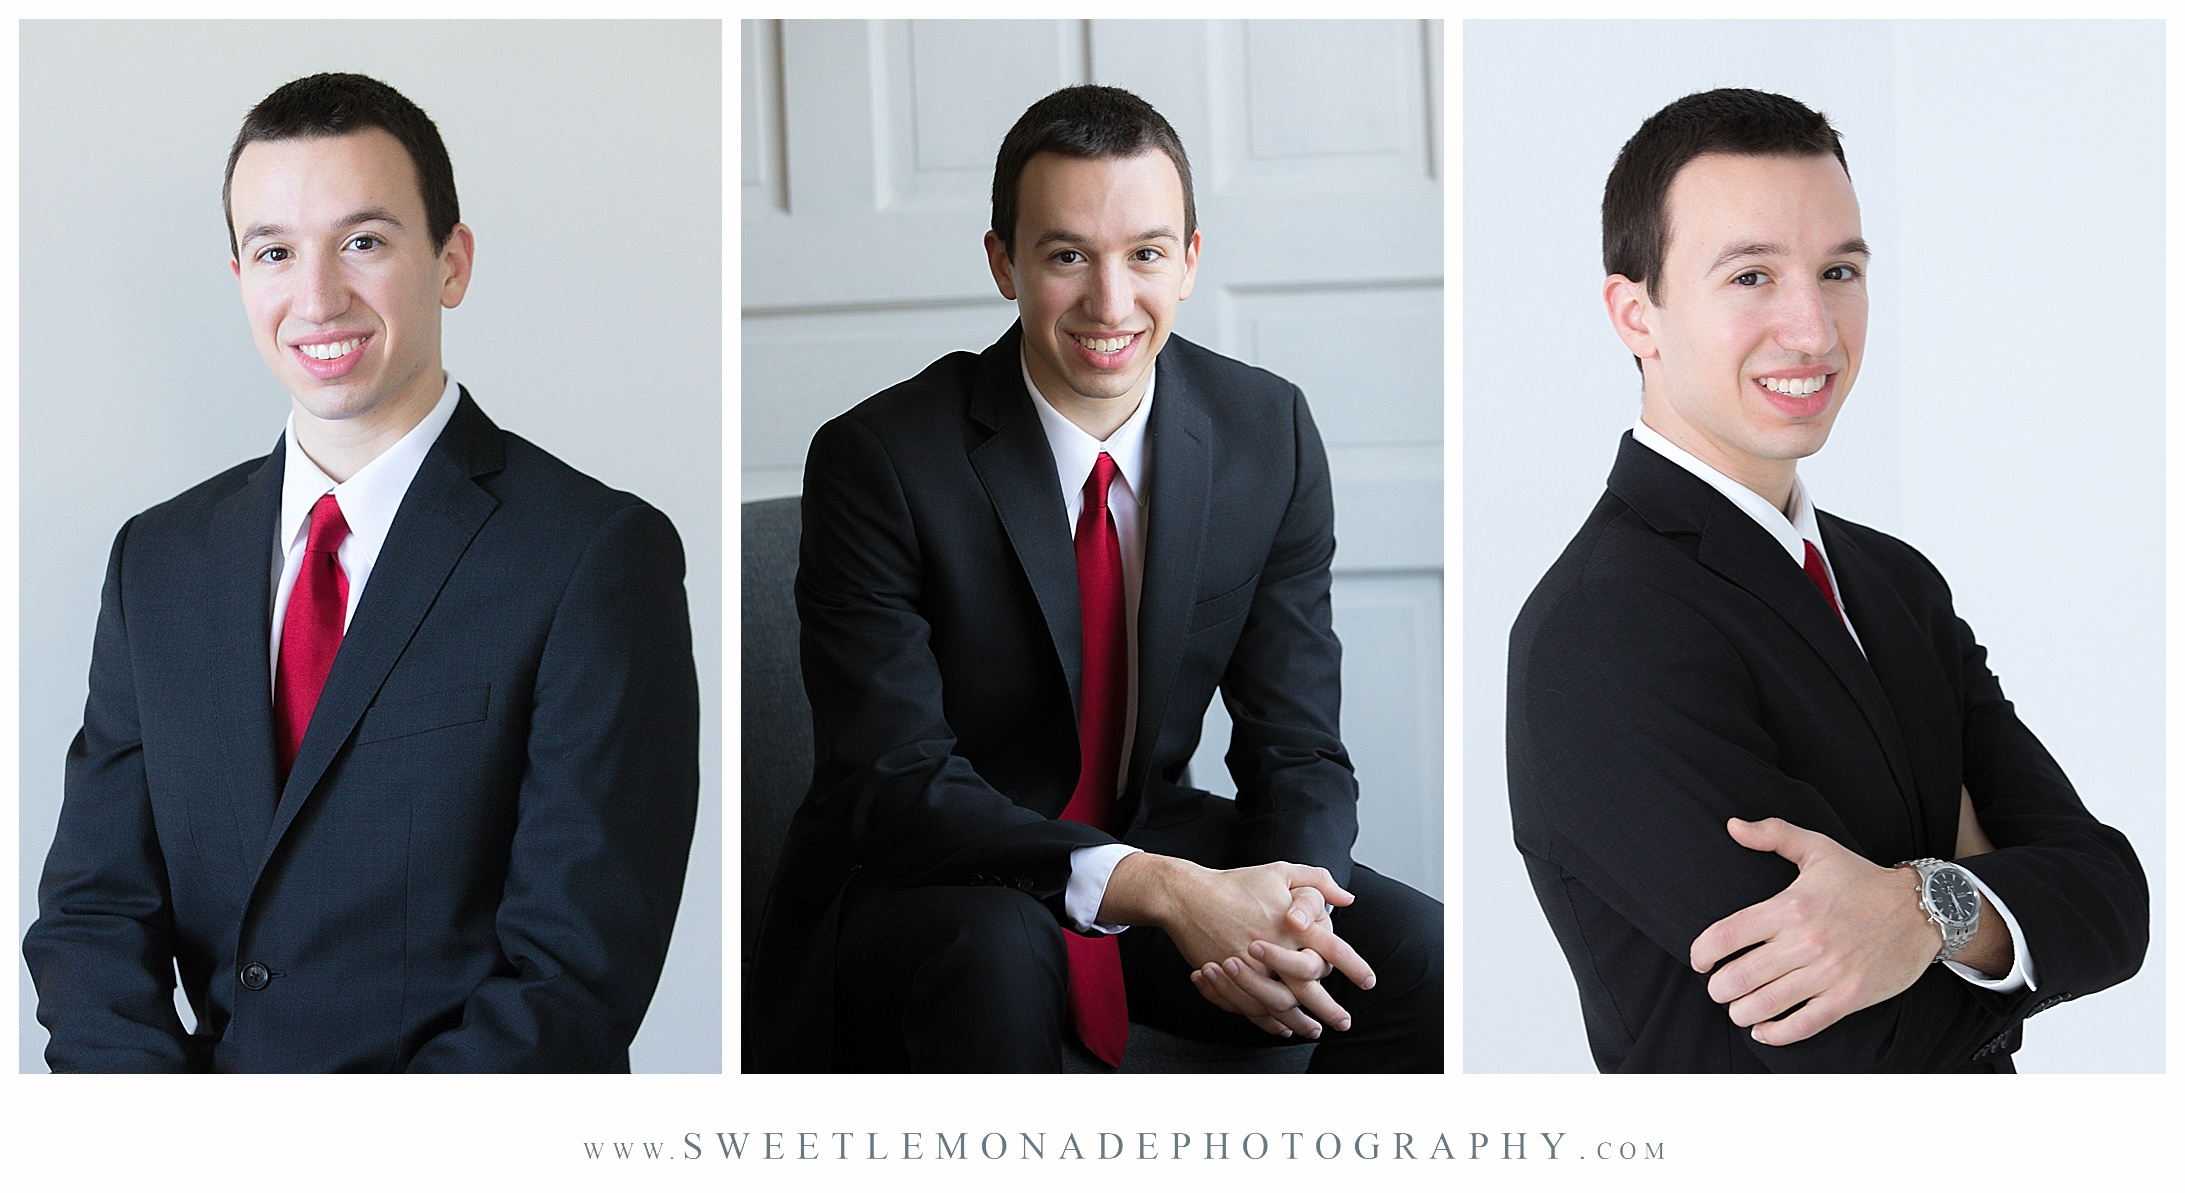 champaign-mahomet corporate-headshot-photographer-sweet-lemonade-photography_2321.jpg